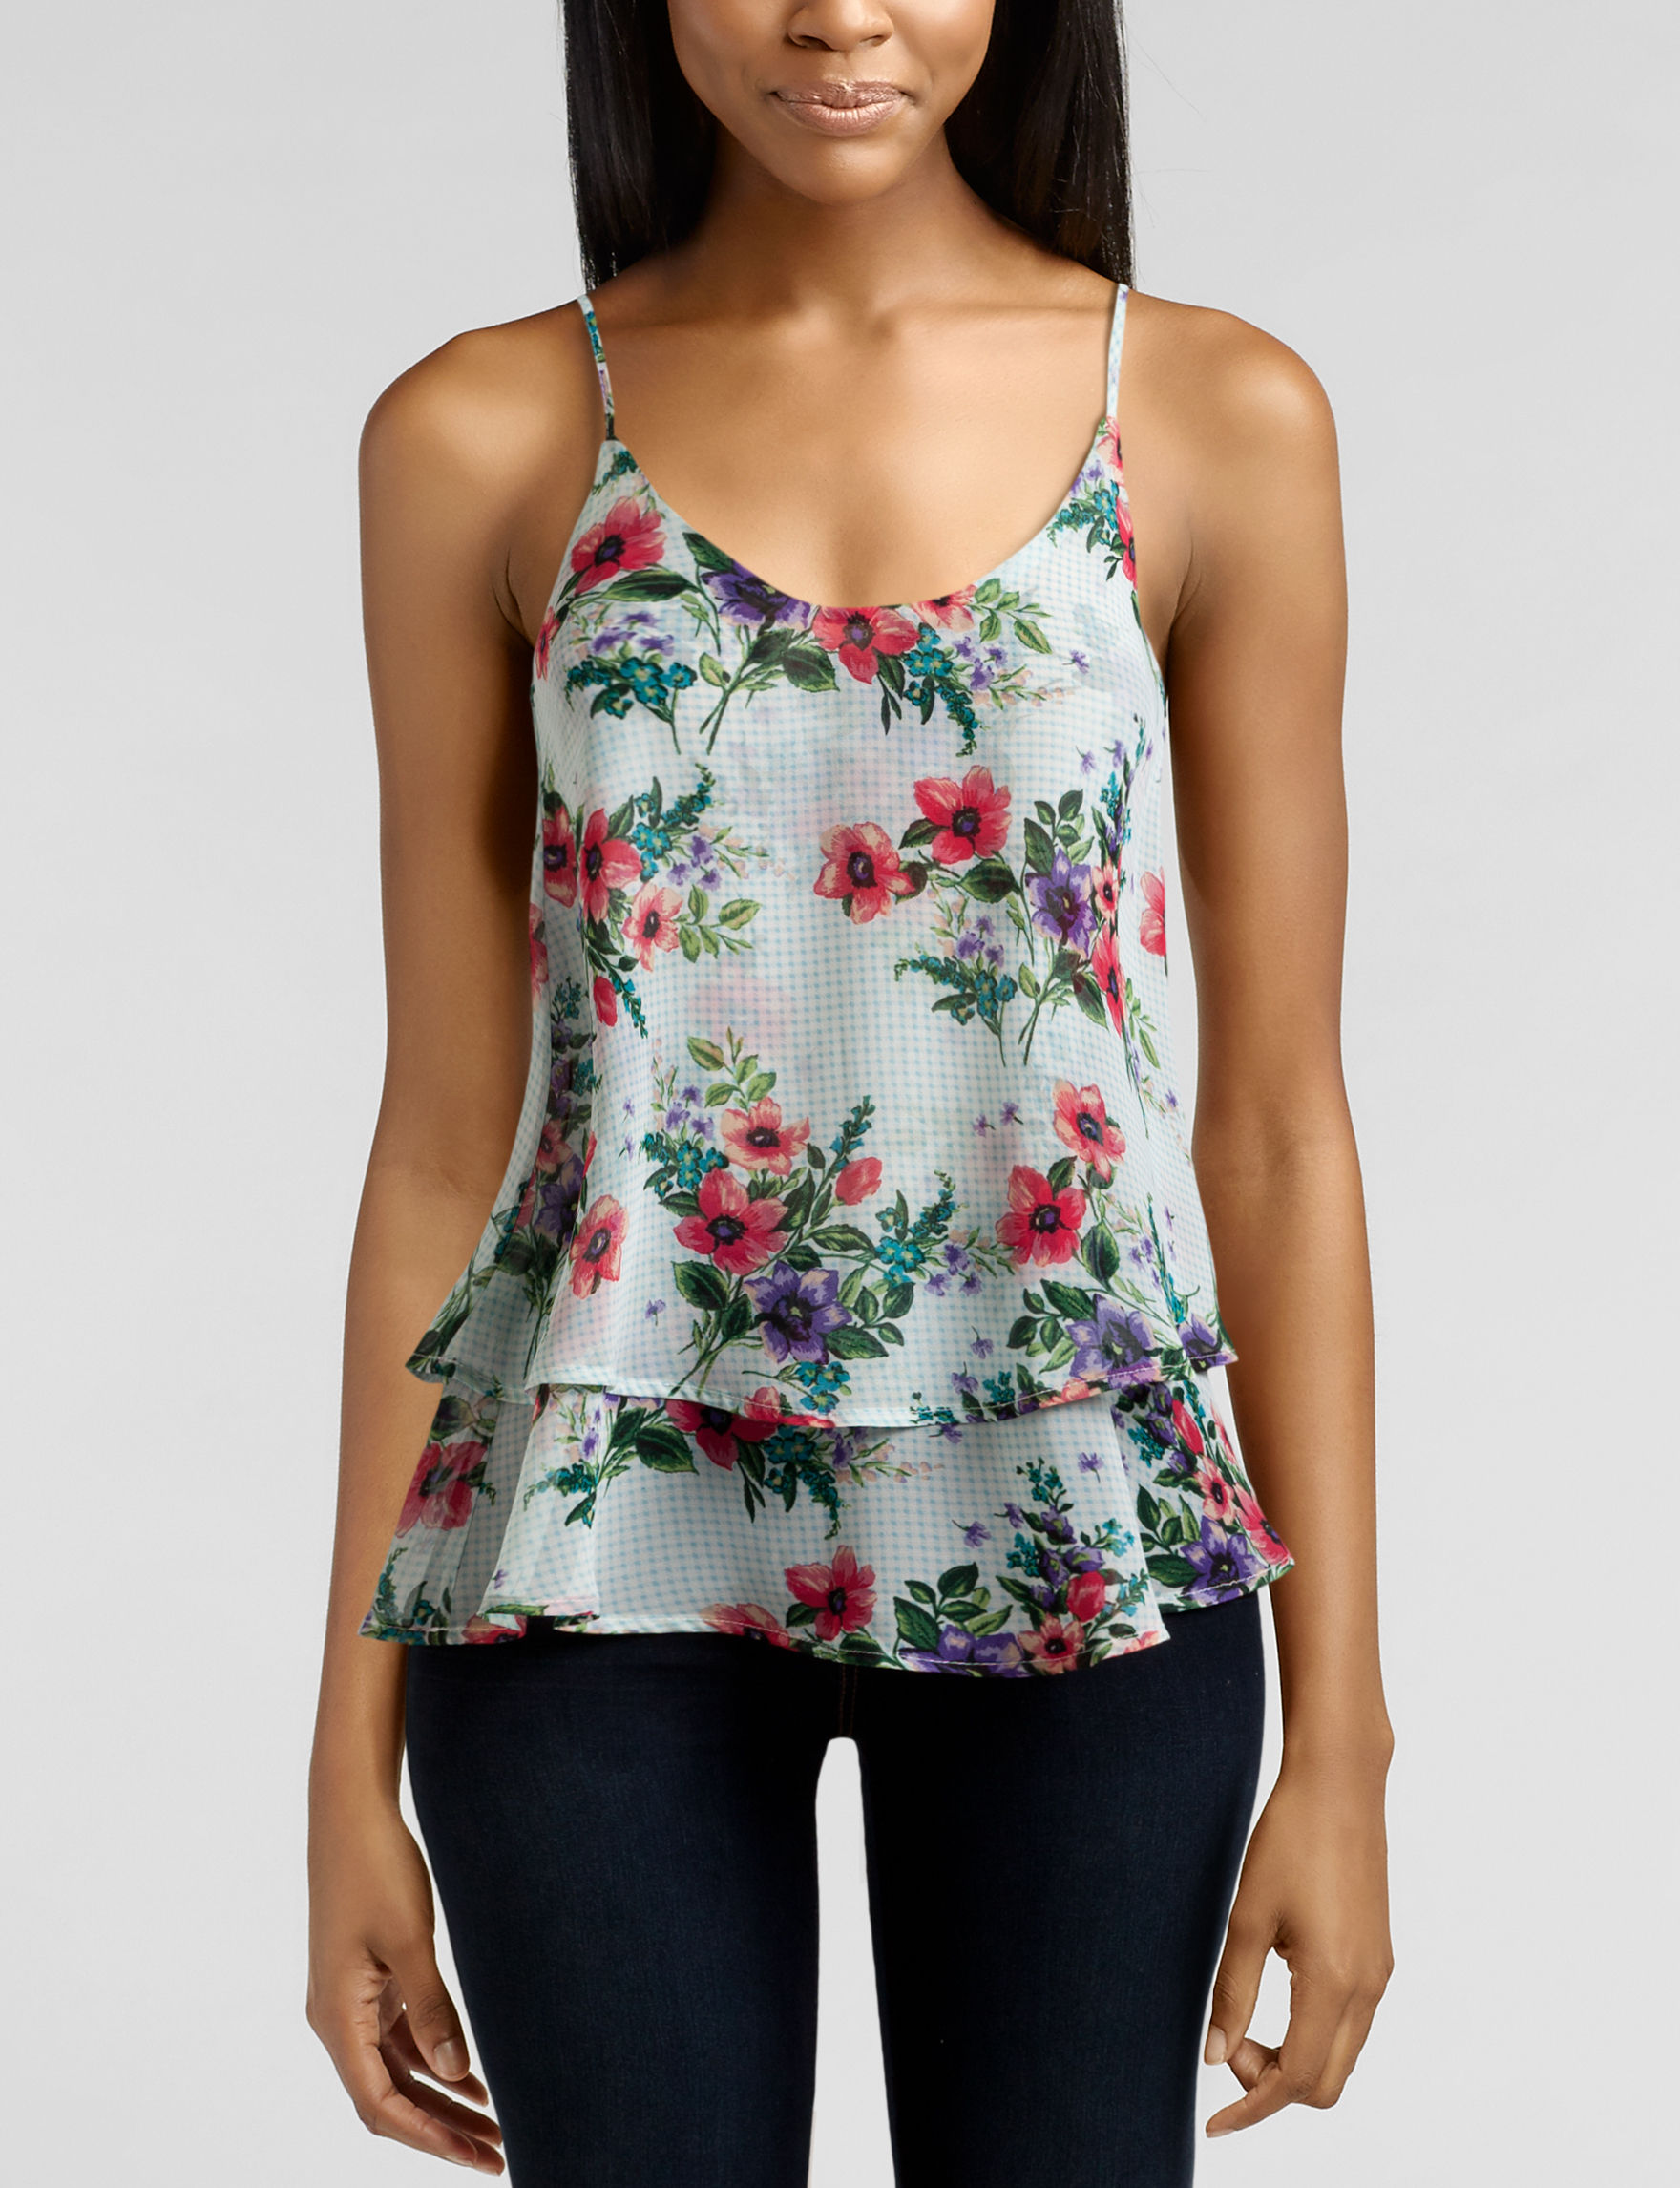 Wishful Park Blue Floral Tees & Tanks